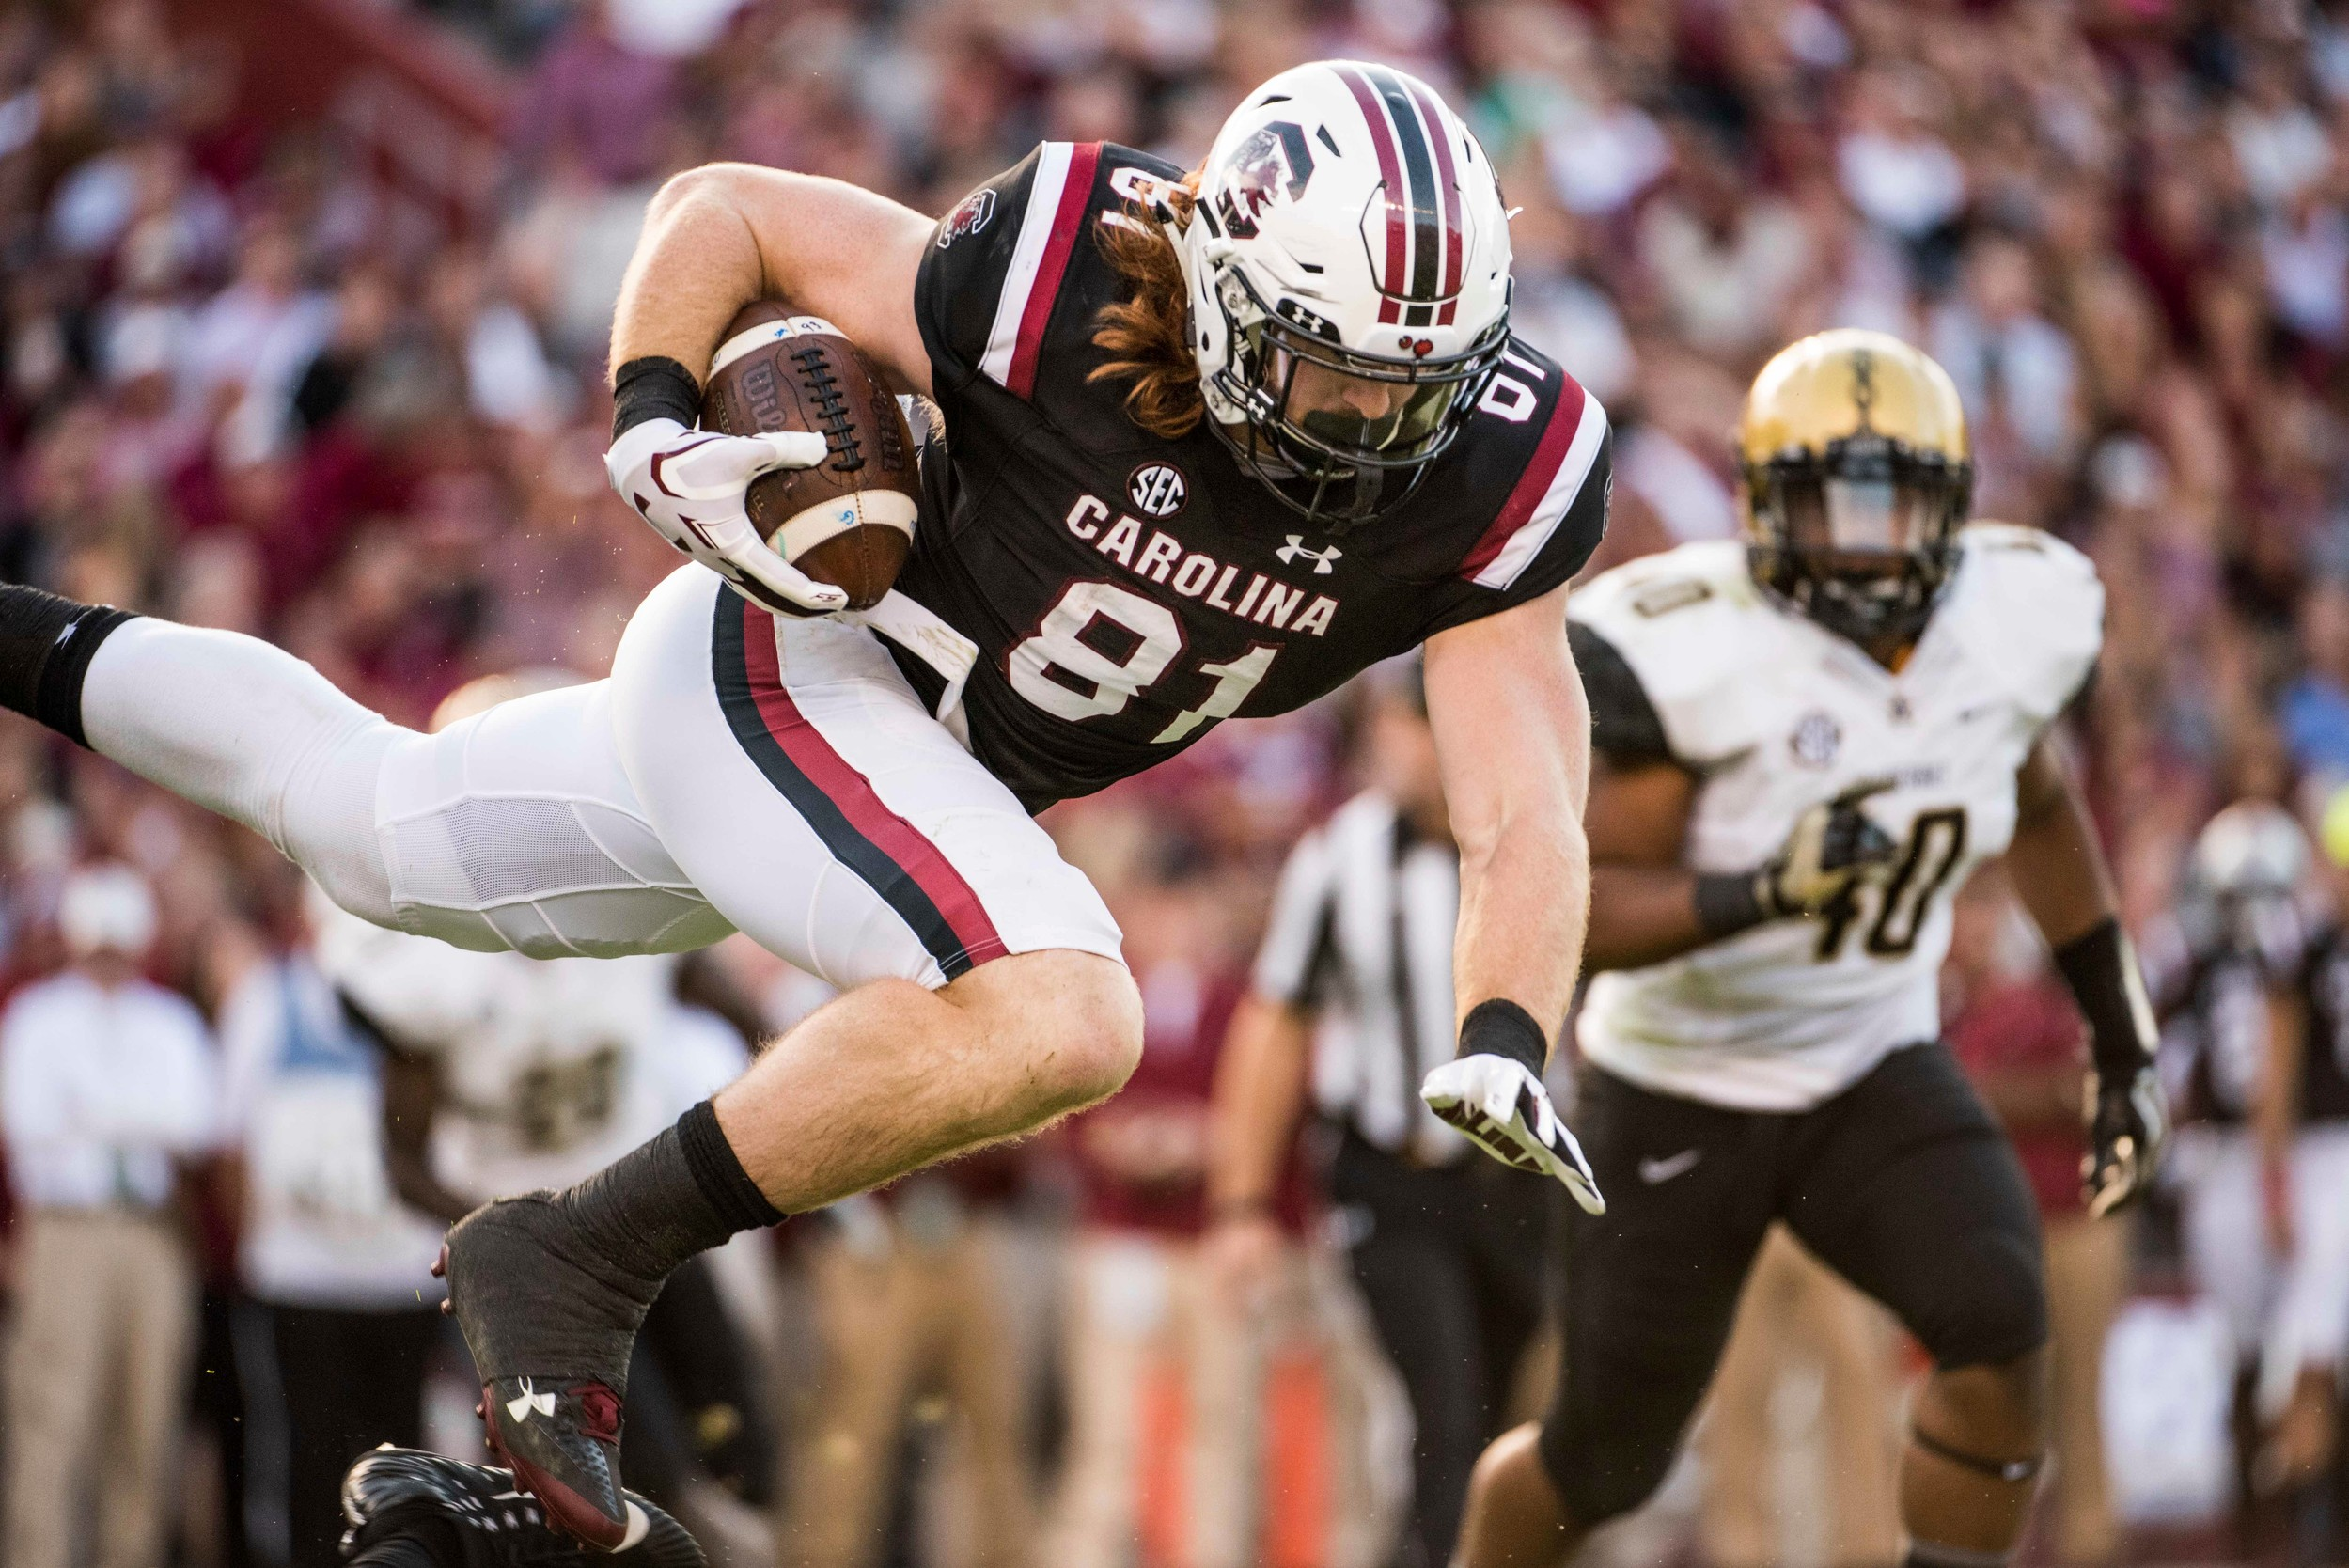 The Associated PressSouth Carolina tight end Hayden Hurst (81) and the rest of the Gamecocks became bowl eligible after their 34-27 victory over Vanderbilt on Saturday at Williams-Brice Stadium in Columbia.